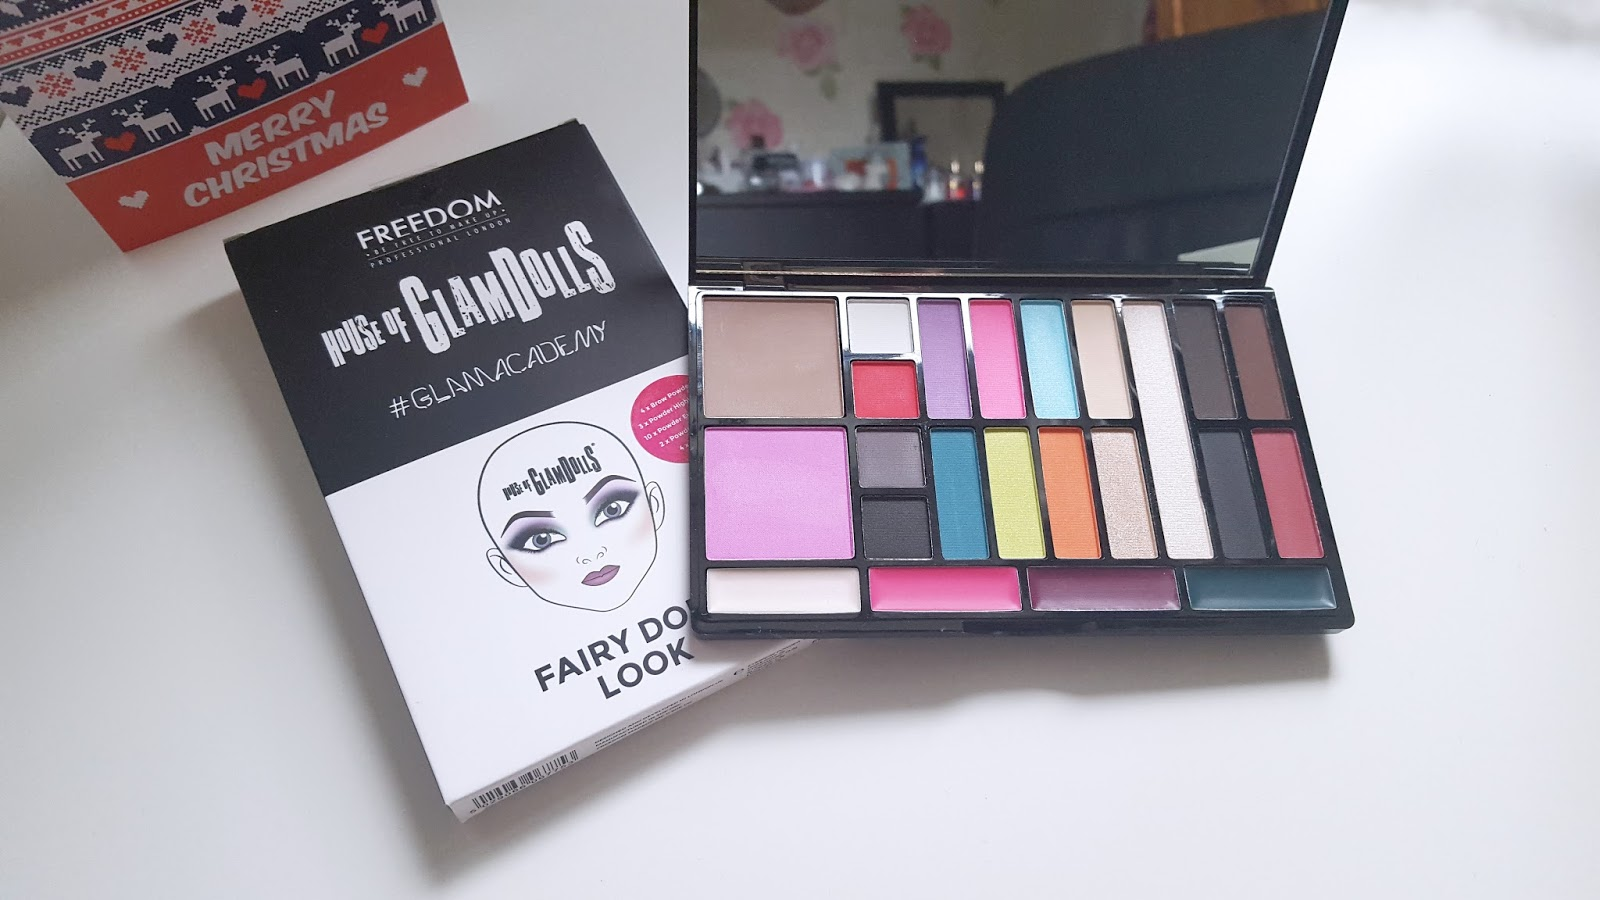 Freedom London Fairy Doll Palette